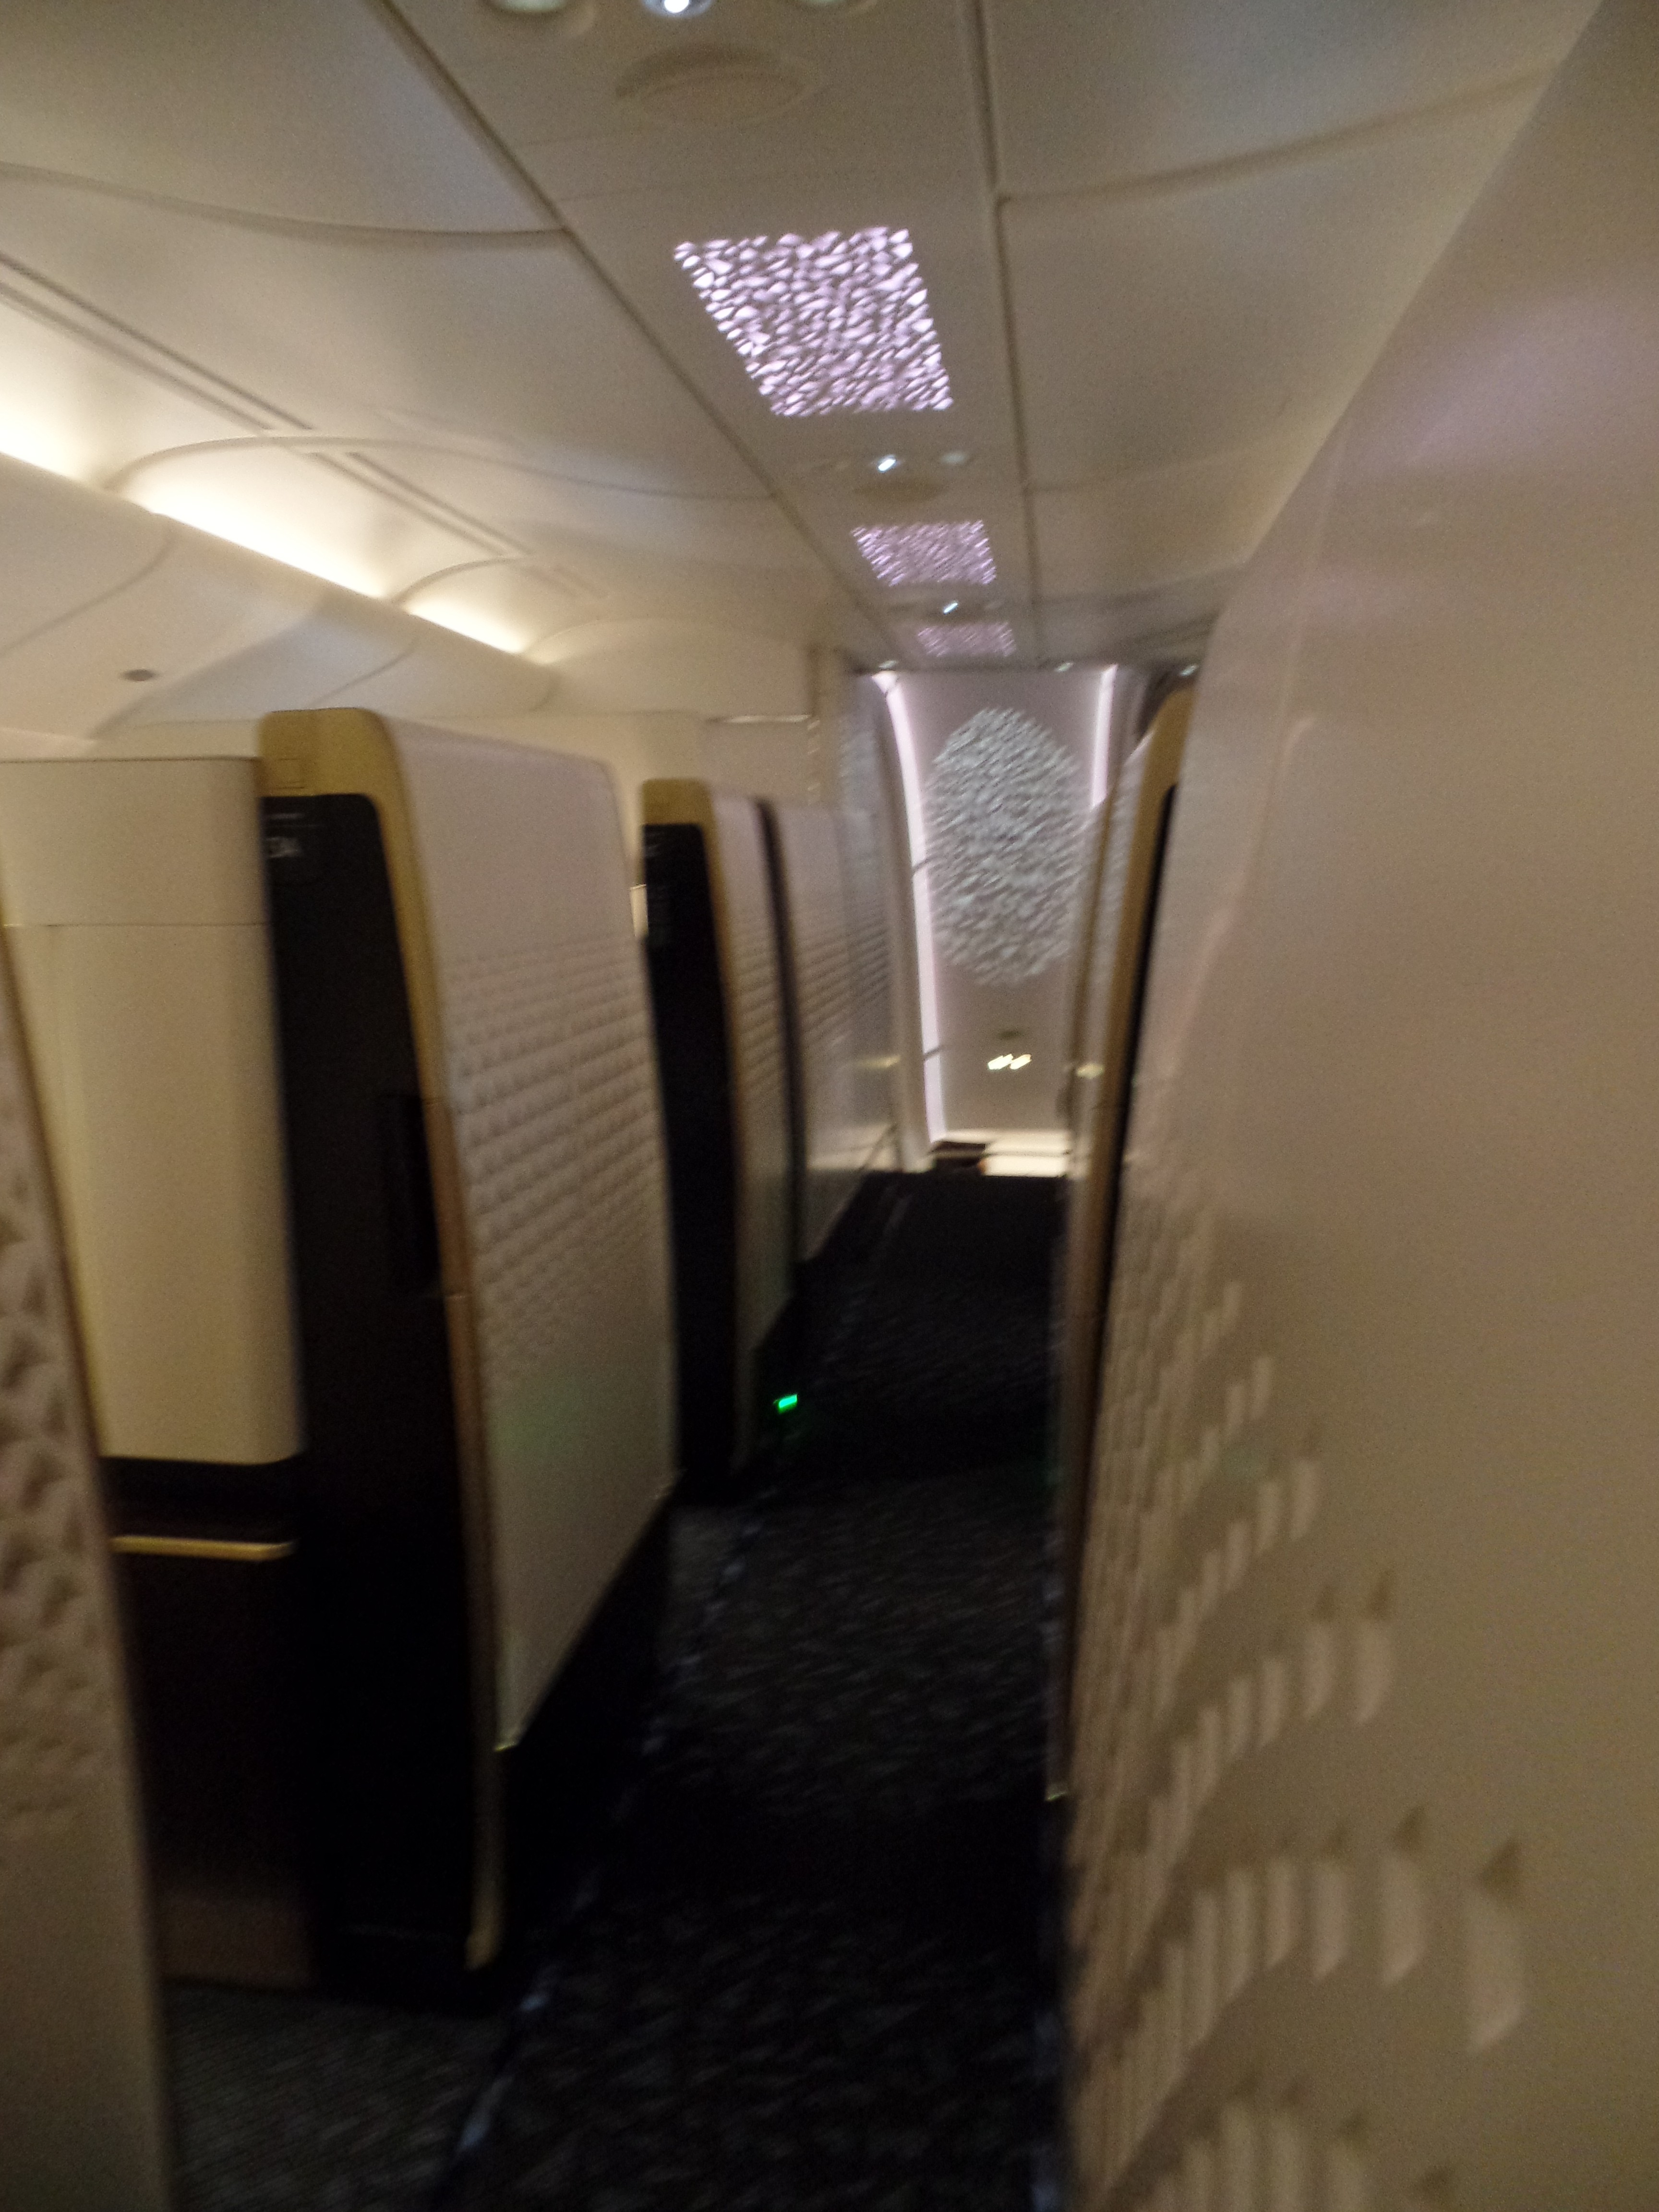 Pic etihad airways a380 first class apartment 4k may 2015 - Boarding The Flight Was Marvelous And I Don T Use That Word Lightly It Was Amazing To Board The Plane And Be Shown To The Largest Seat Suite Apartment In